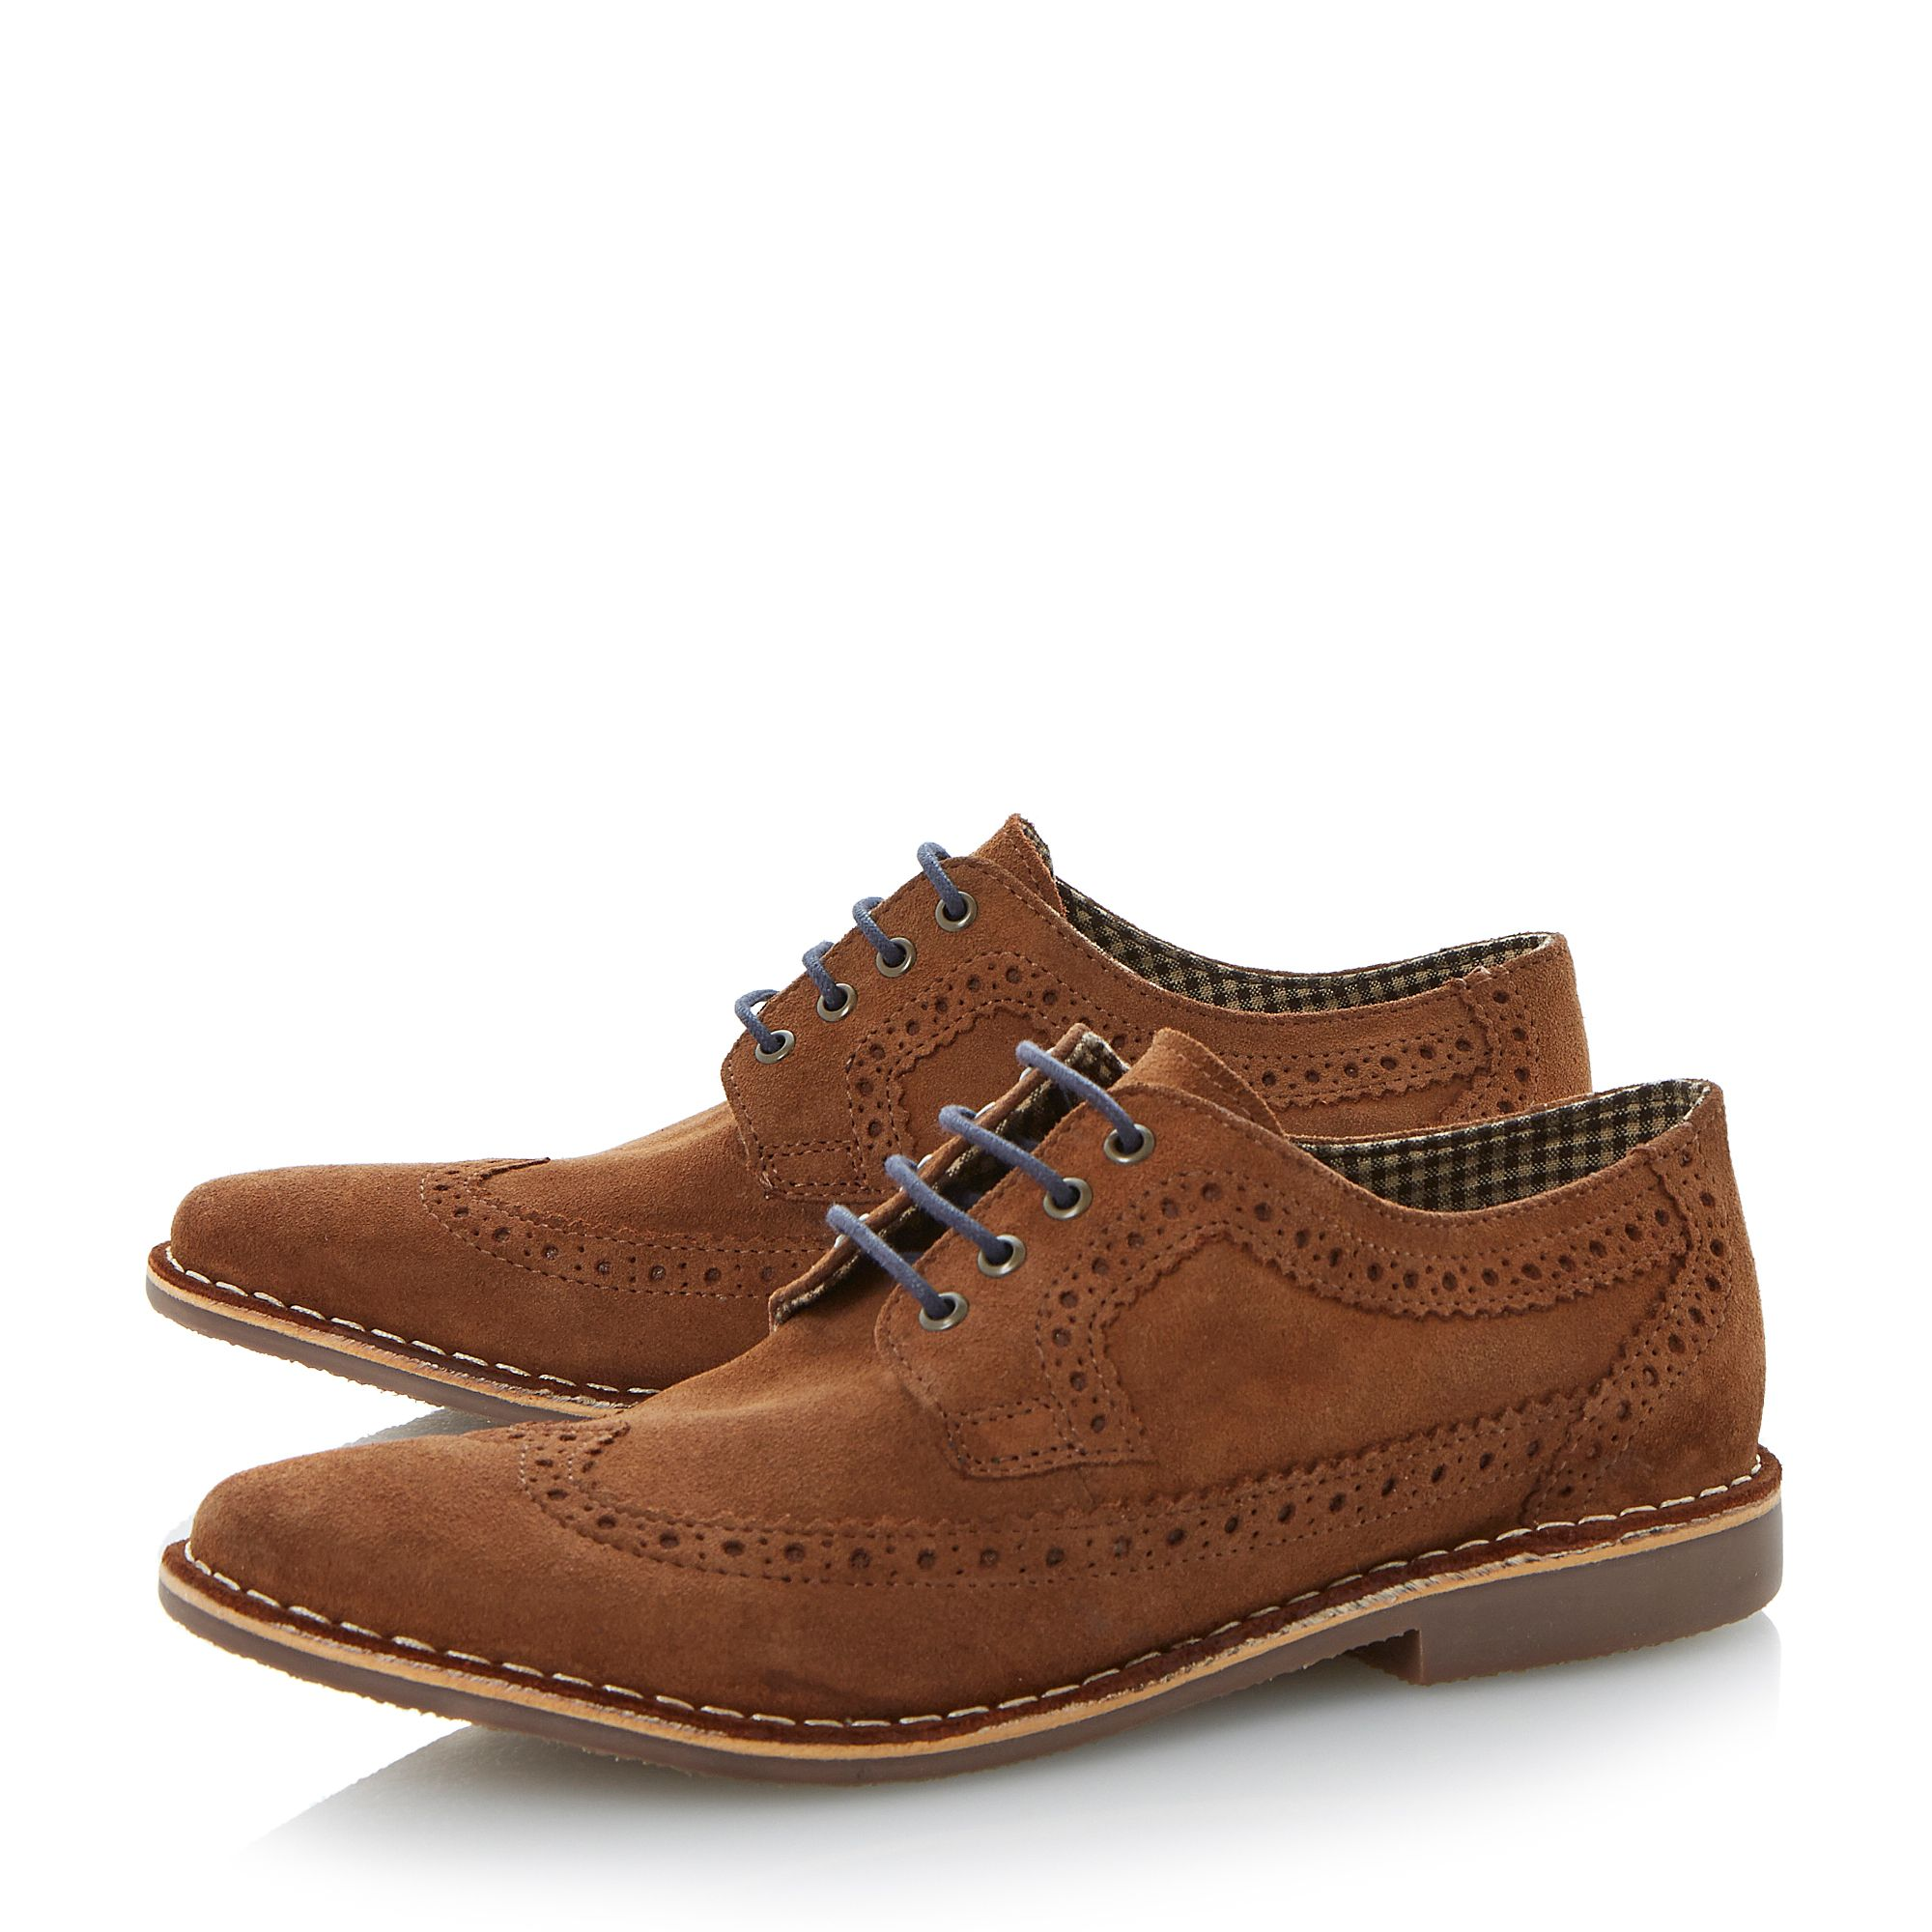 Barnsbury wingtip brogue desert shoes